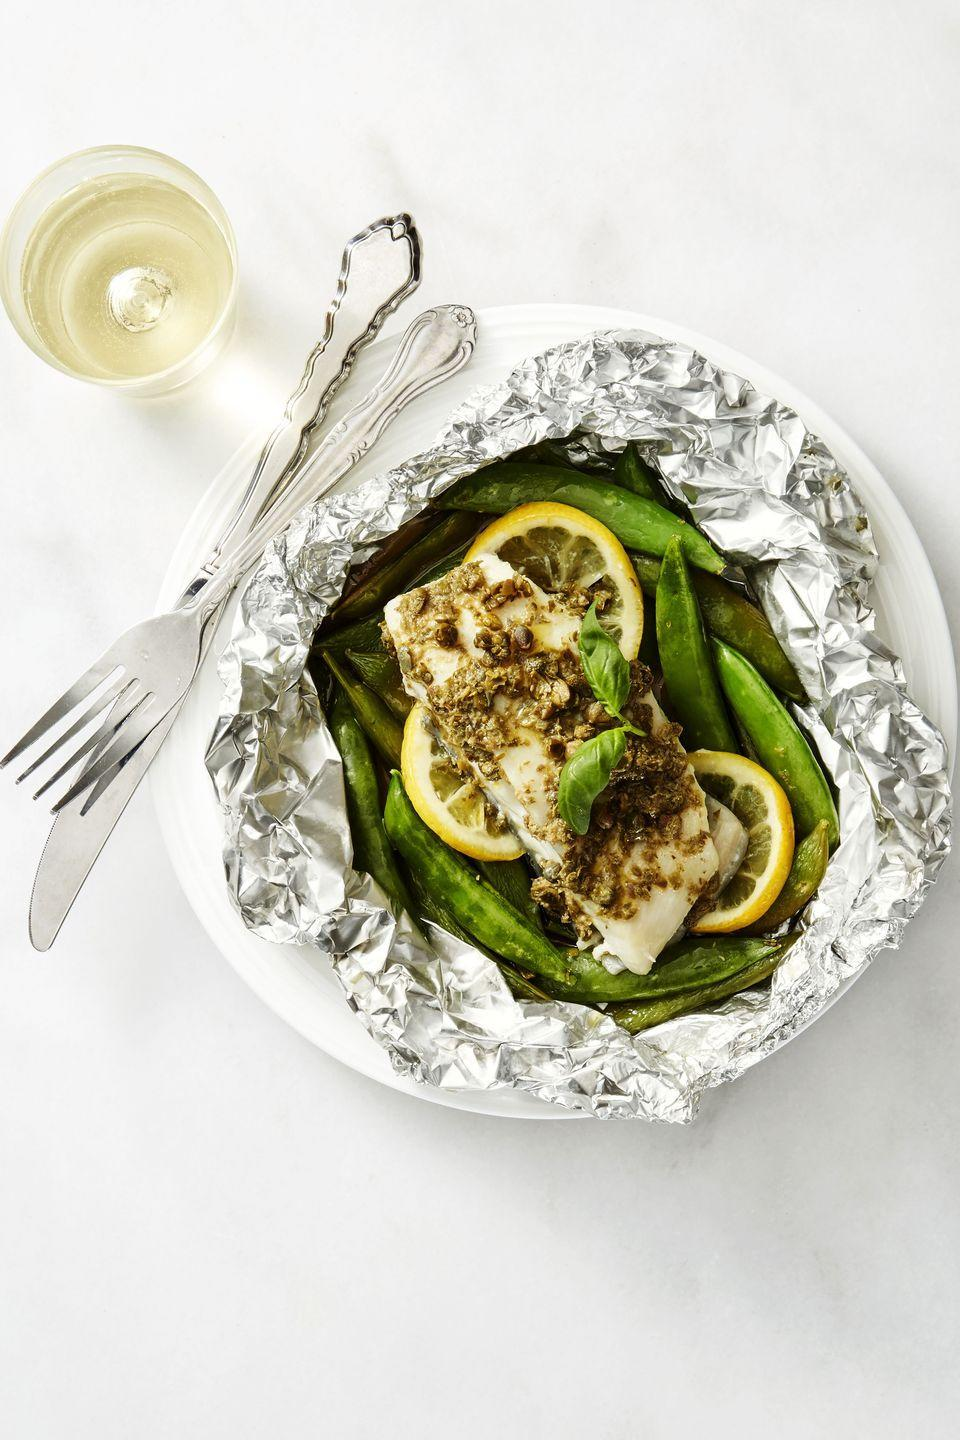 """<p>We <em>love</em> a simple """"assembly"""" dinner: This fish plate comes together by simply throwing in a handful of ingredients into a packet and then into the oven. Voila! <br></p><p><em><a href=""""https://www.goodhousekeeping.com/food-recipes/a39351/fish-packets-with-caper-butter-and-snap-peas-recipe/"""" rel=""""nofollow noopener"""" target=""""_blank"""" data-ylk=""""slk:Get the recipe for Fish Packets with Caper Butter and Snap Peas »"""" class=""""link rapid-noclick-resp"""">Get the recipe for Fish Packets with Caper Butter and Snap Peas »</a></em></p>"""